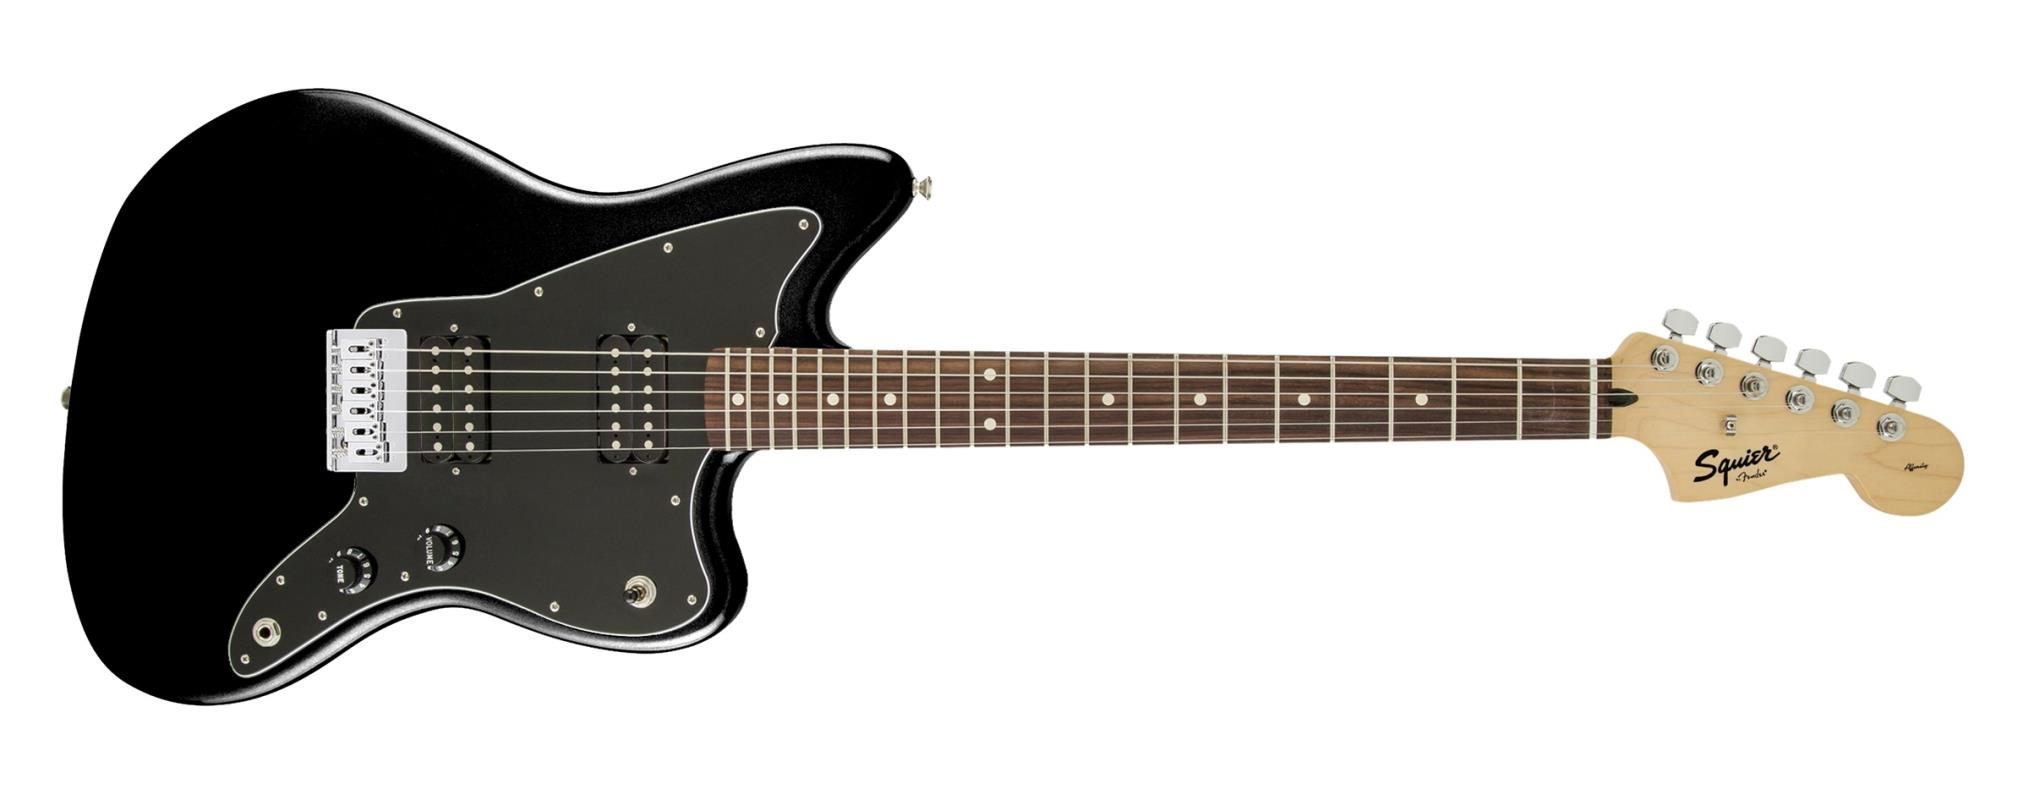 Squier Affinity Series Jazzmaster Hh Electric Guitar Black